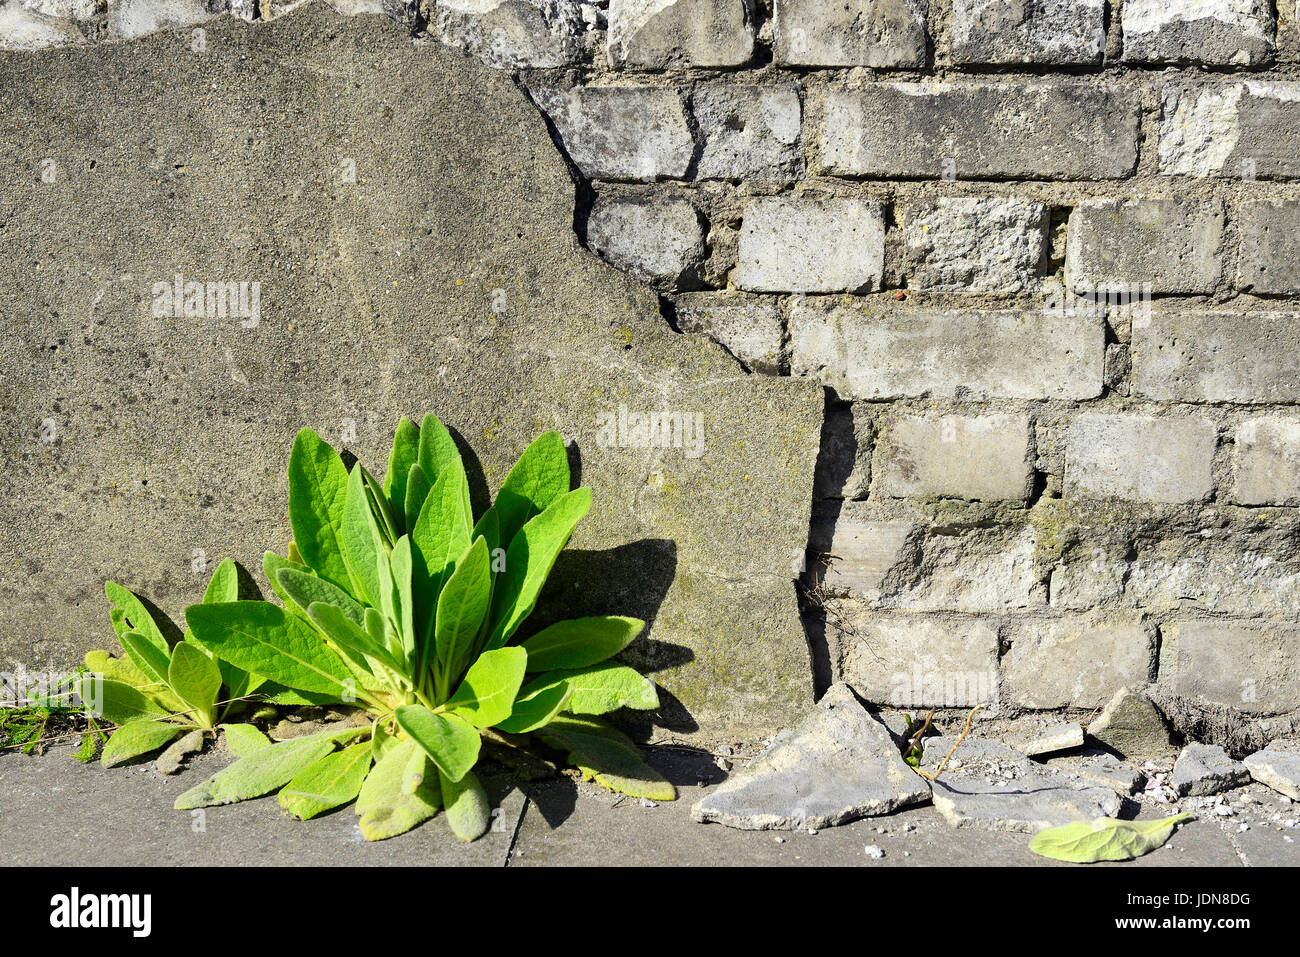 Plant grows by a dilapidated wall, Pflanze waechst an einer verfallenen Mauer - Stock Image